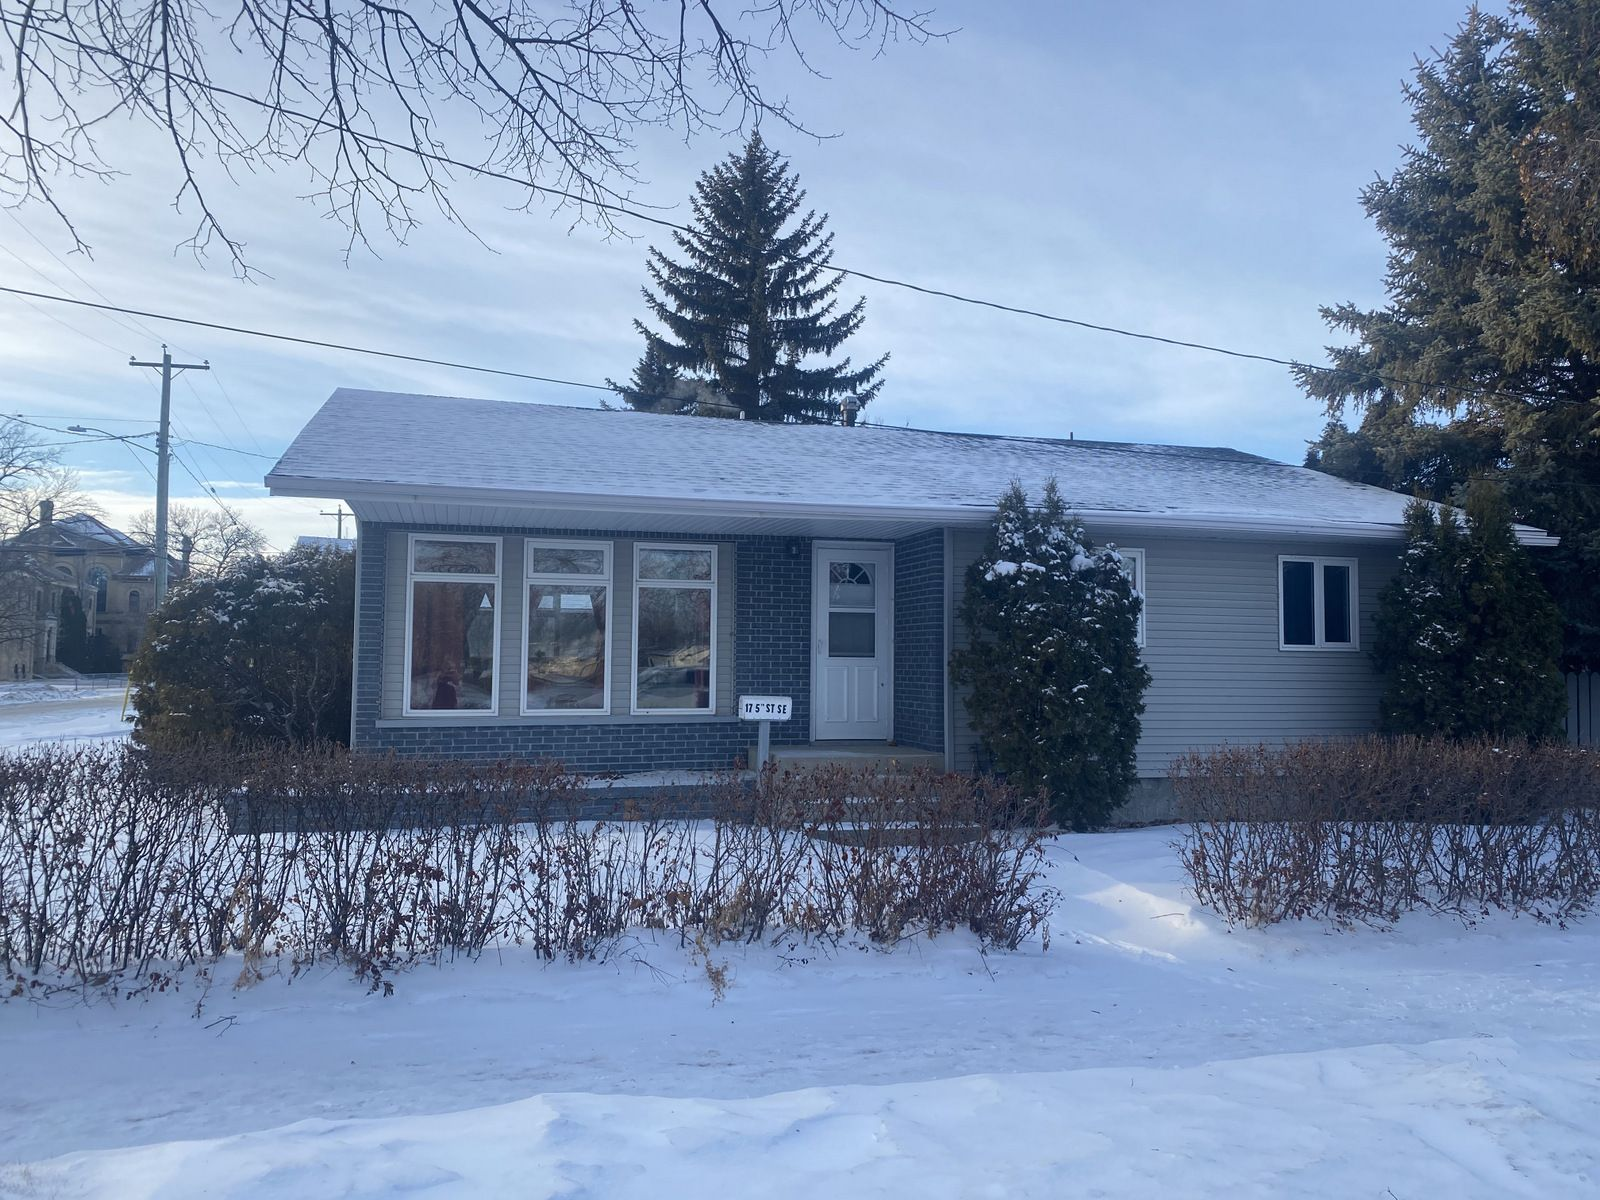 Main Photo: 17 5th Street SE in Portage la Prairie: House for sale : MLS®# 202101080